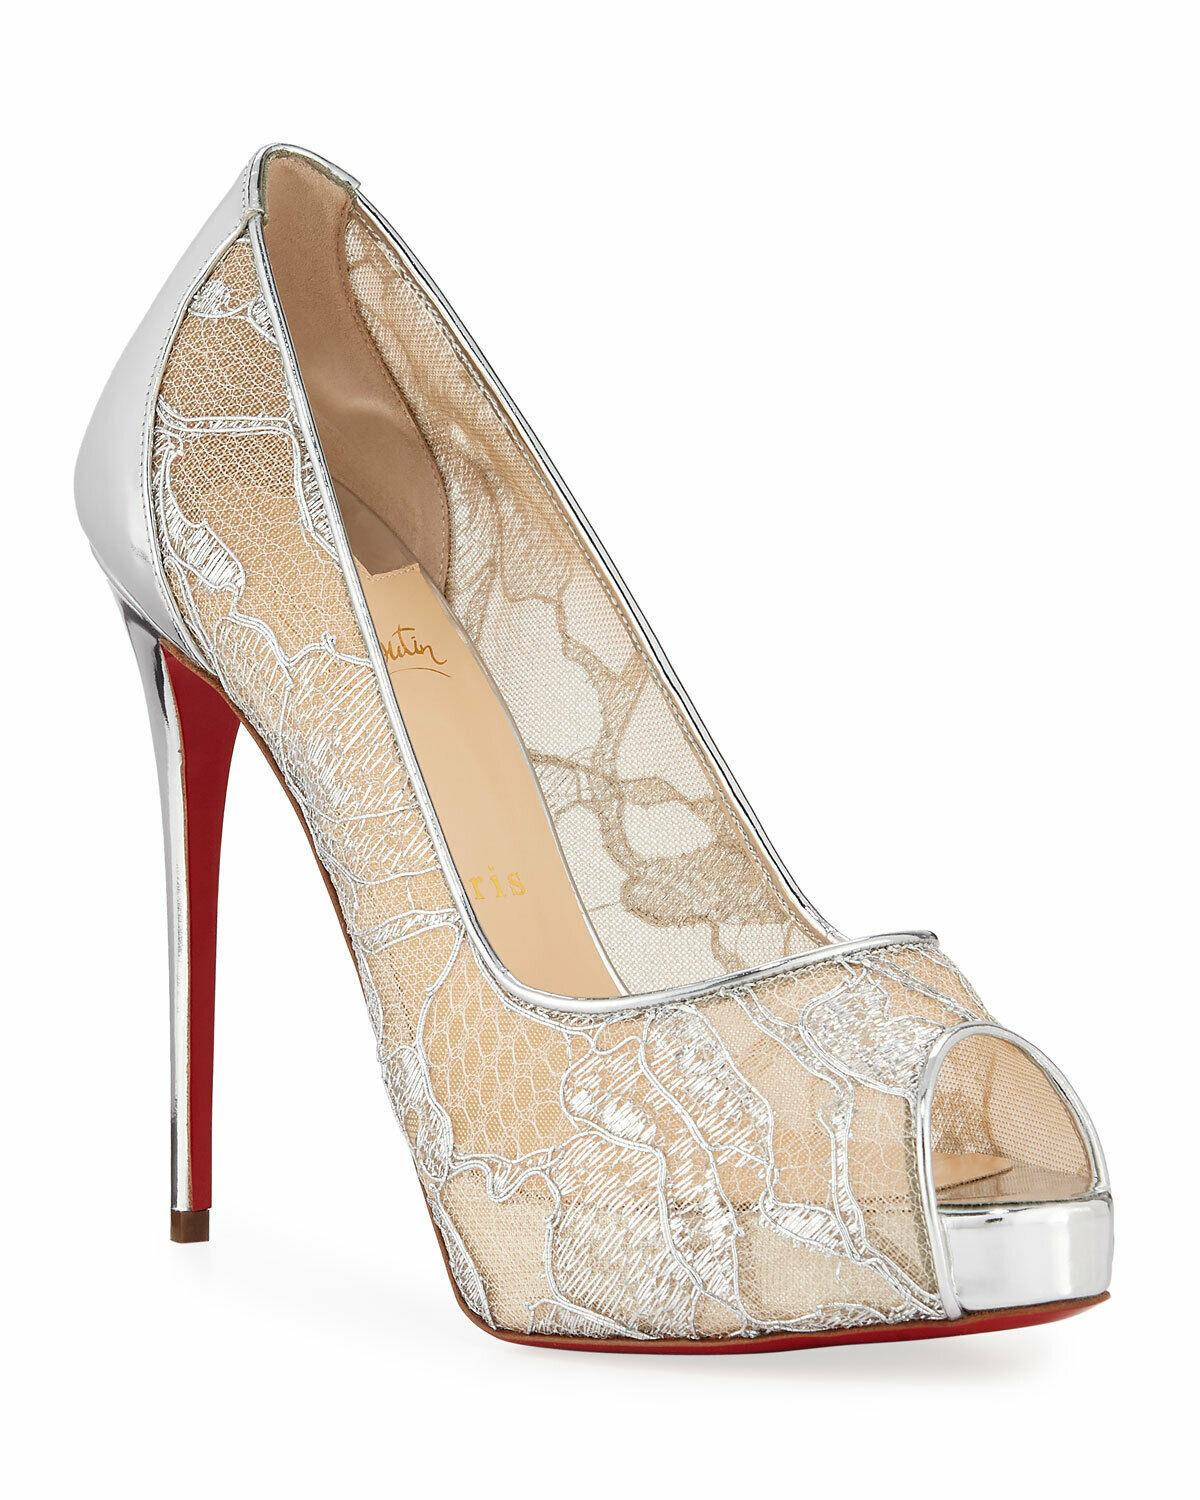 Christian Louboutin VERY LACE Silver Patent Leather Pumps 40.5 Shoes Heels